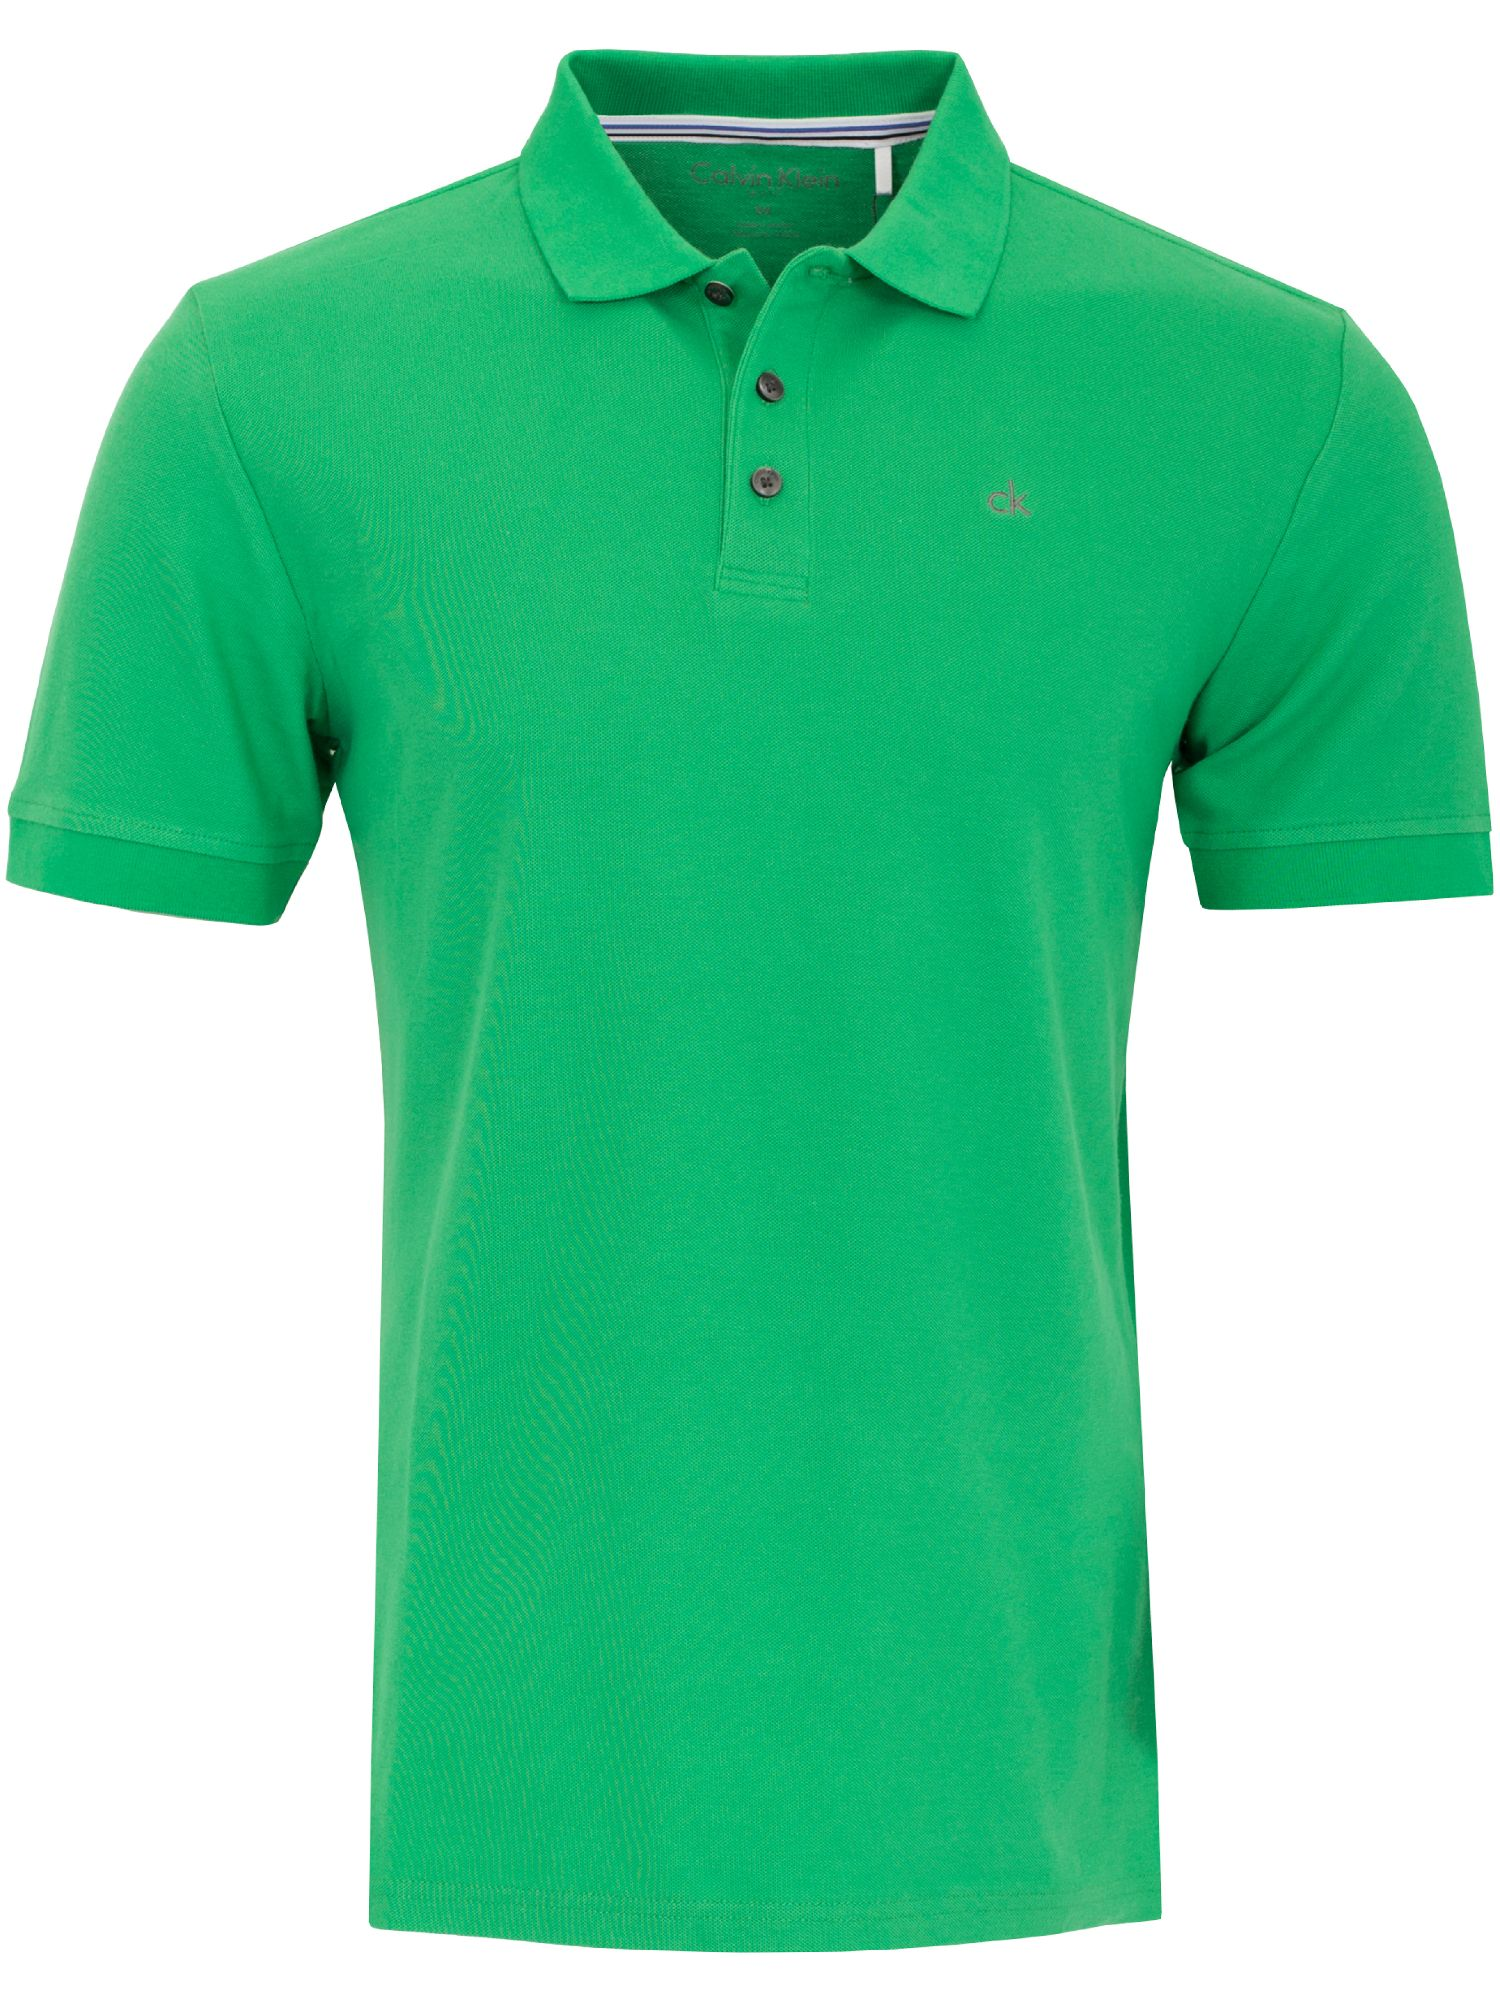 Men's Calvin Klein Golf Midtown Radical Cotton Polo, Green